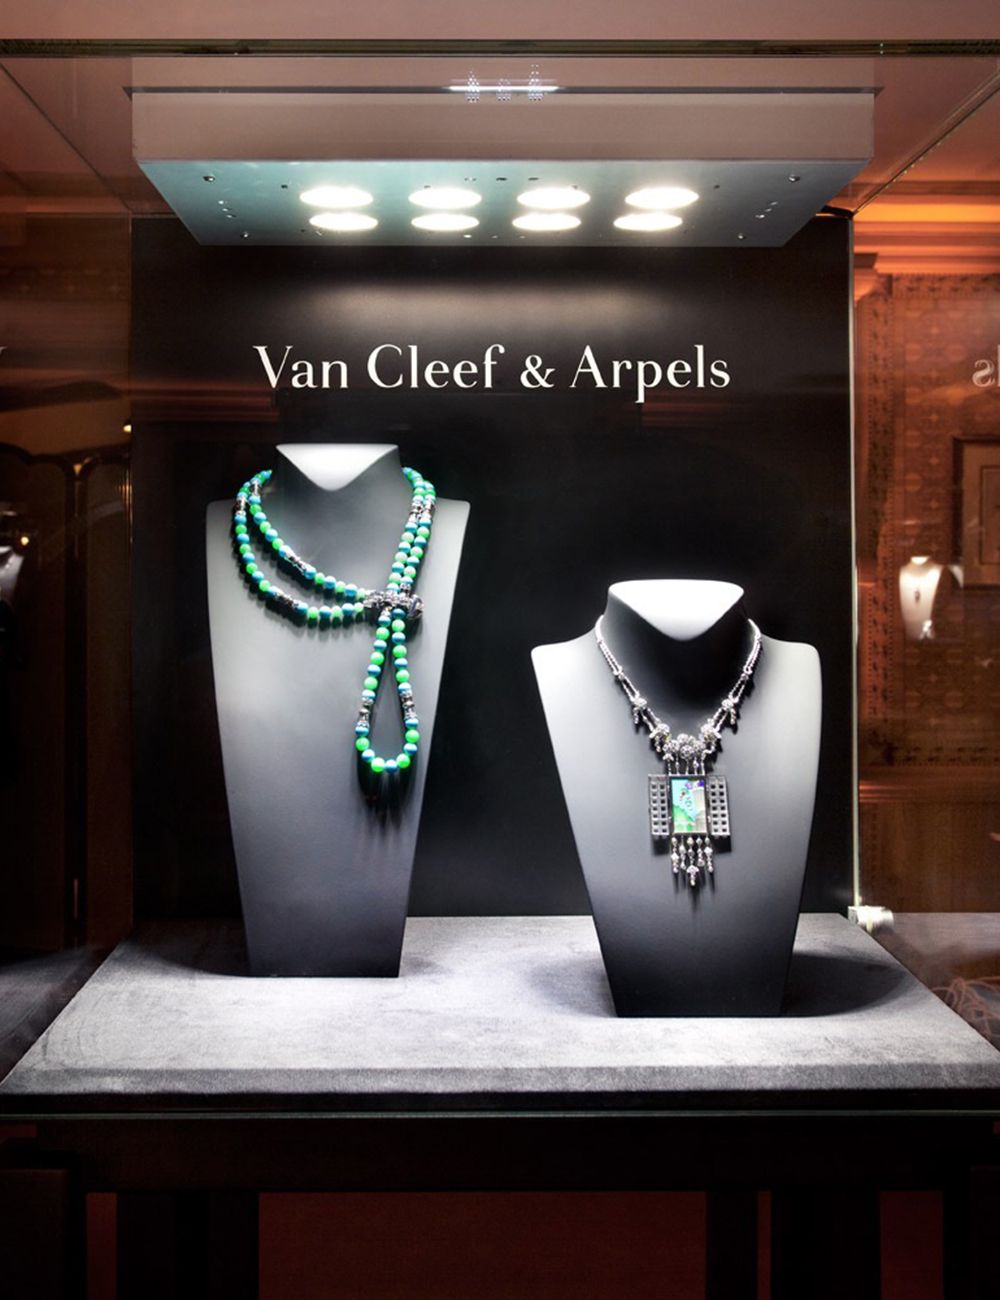 #Van Cleef & Arpels #vancleef #gstaad #gstaadpalace #lighting #led #display #showcase #ledspot #focus #eclairageproduit #vitrine #boutique